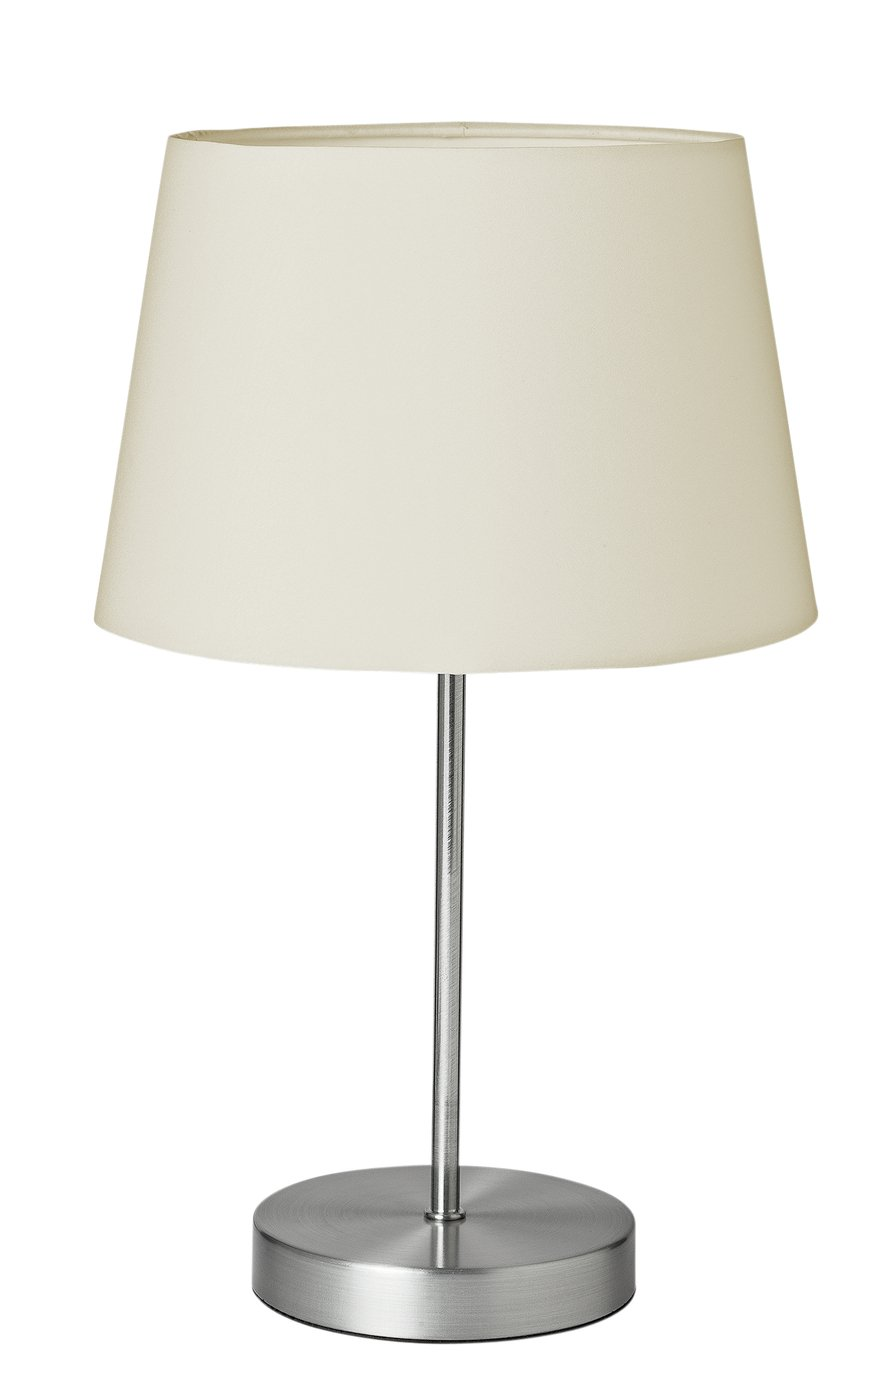 Argos Home Taper Touch Table Lamp - Cream